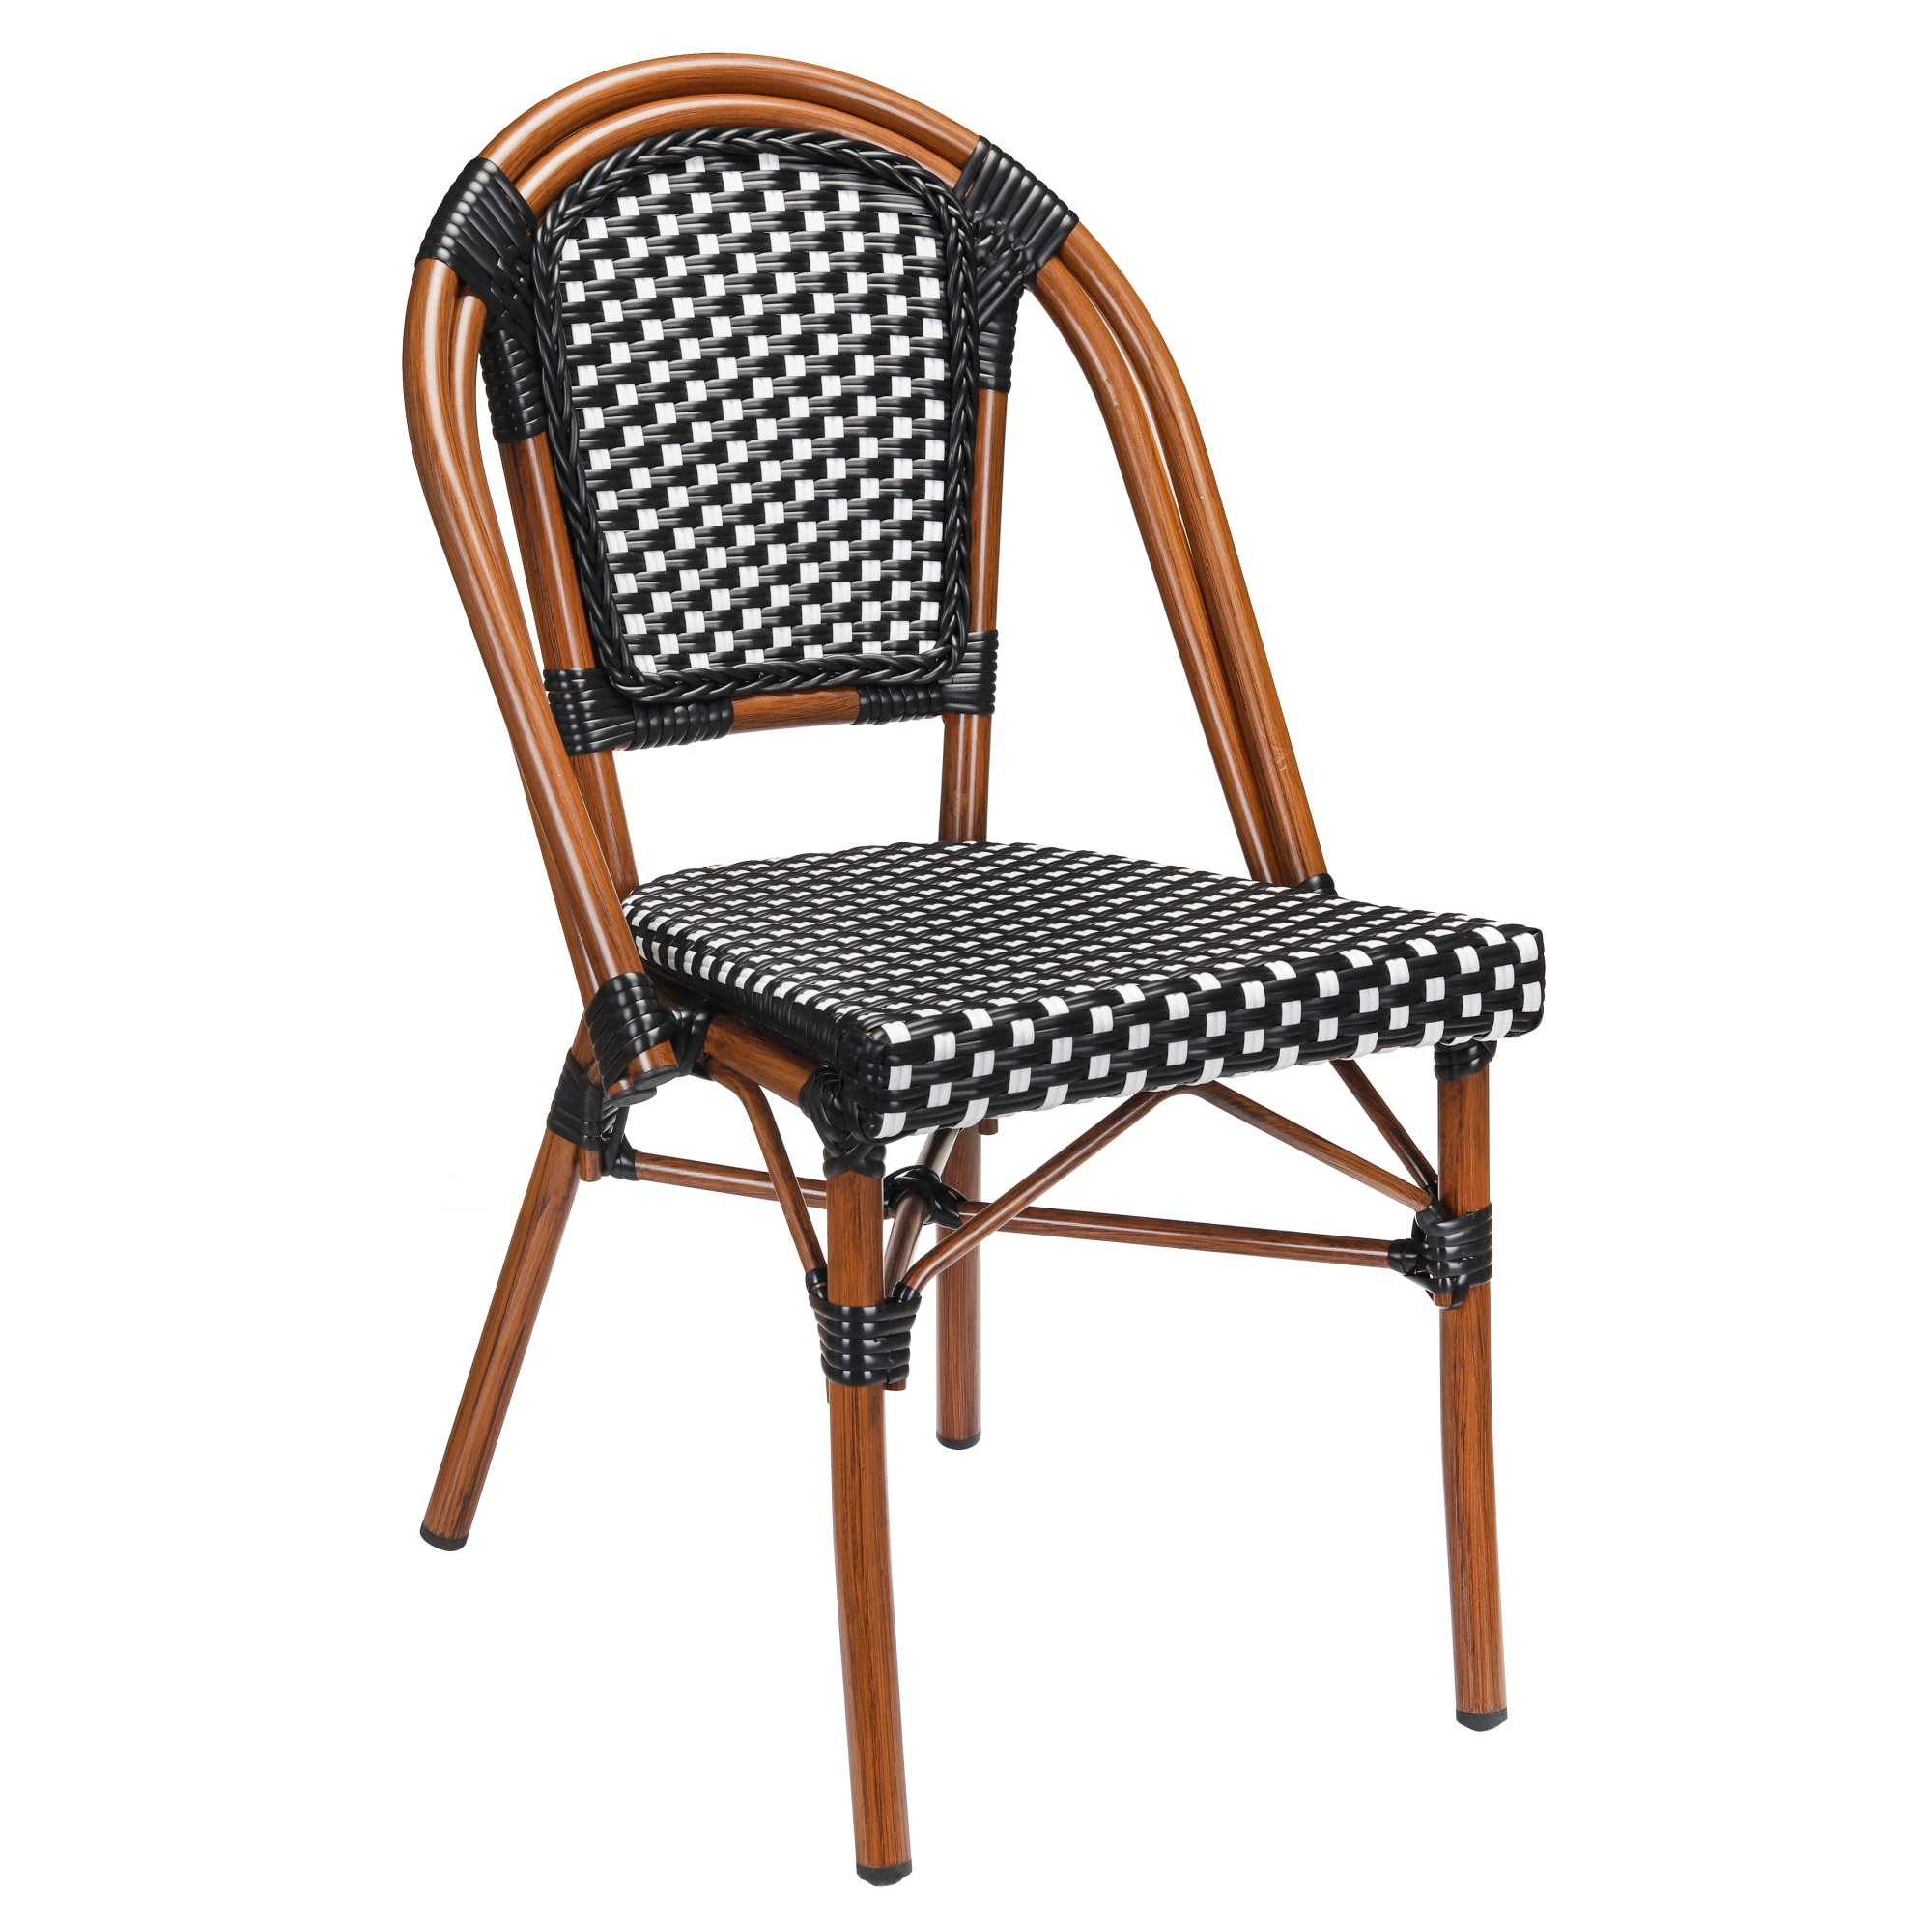 Aluminum Bamboo Patio Chair With Black & White Rattan with Aluminum Bamboo Patio Chair With Black & White Rattan